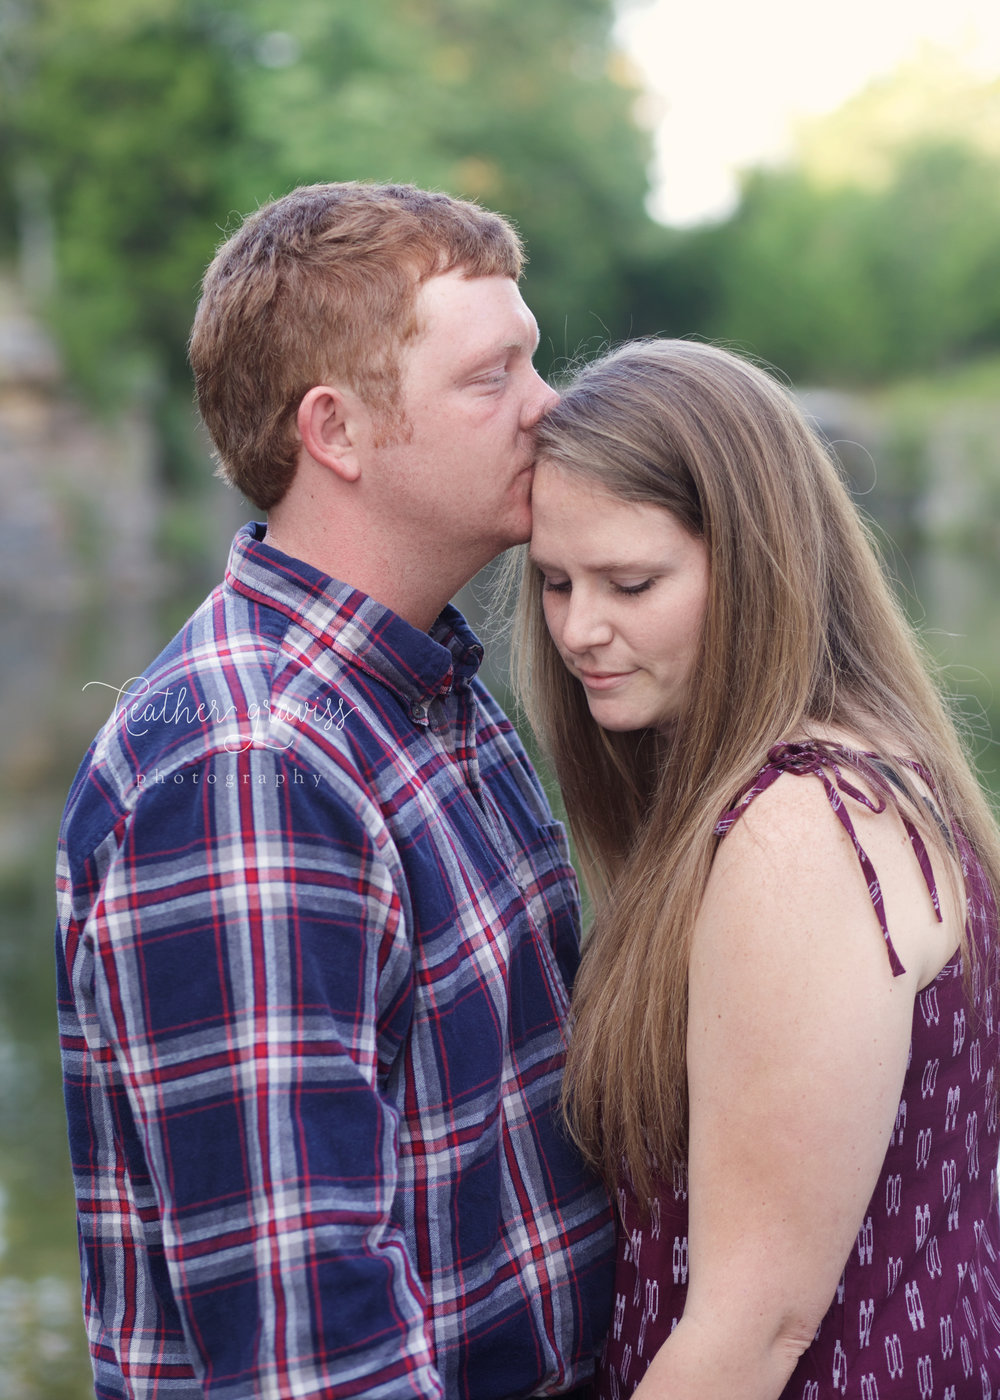 nashville middle tn engagement photographer 274.jpg